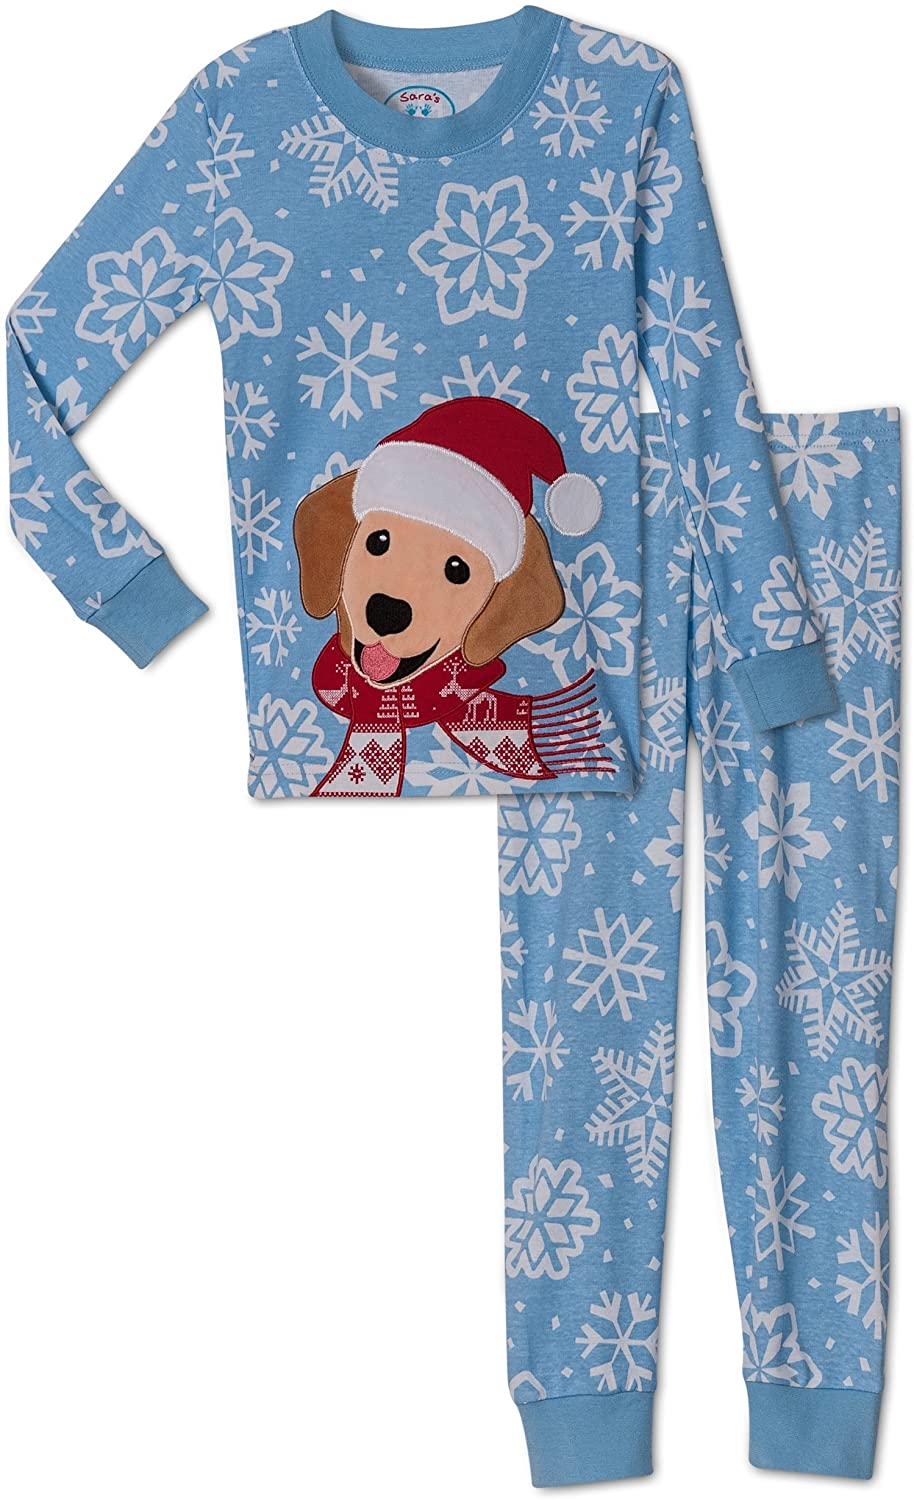 Sara's Prints Unisex Holiday Puppy 2 Piece Pajama Set, Toddlers Size 2T